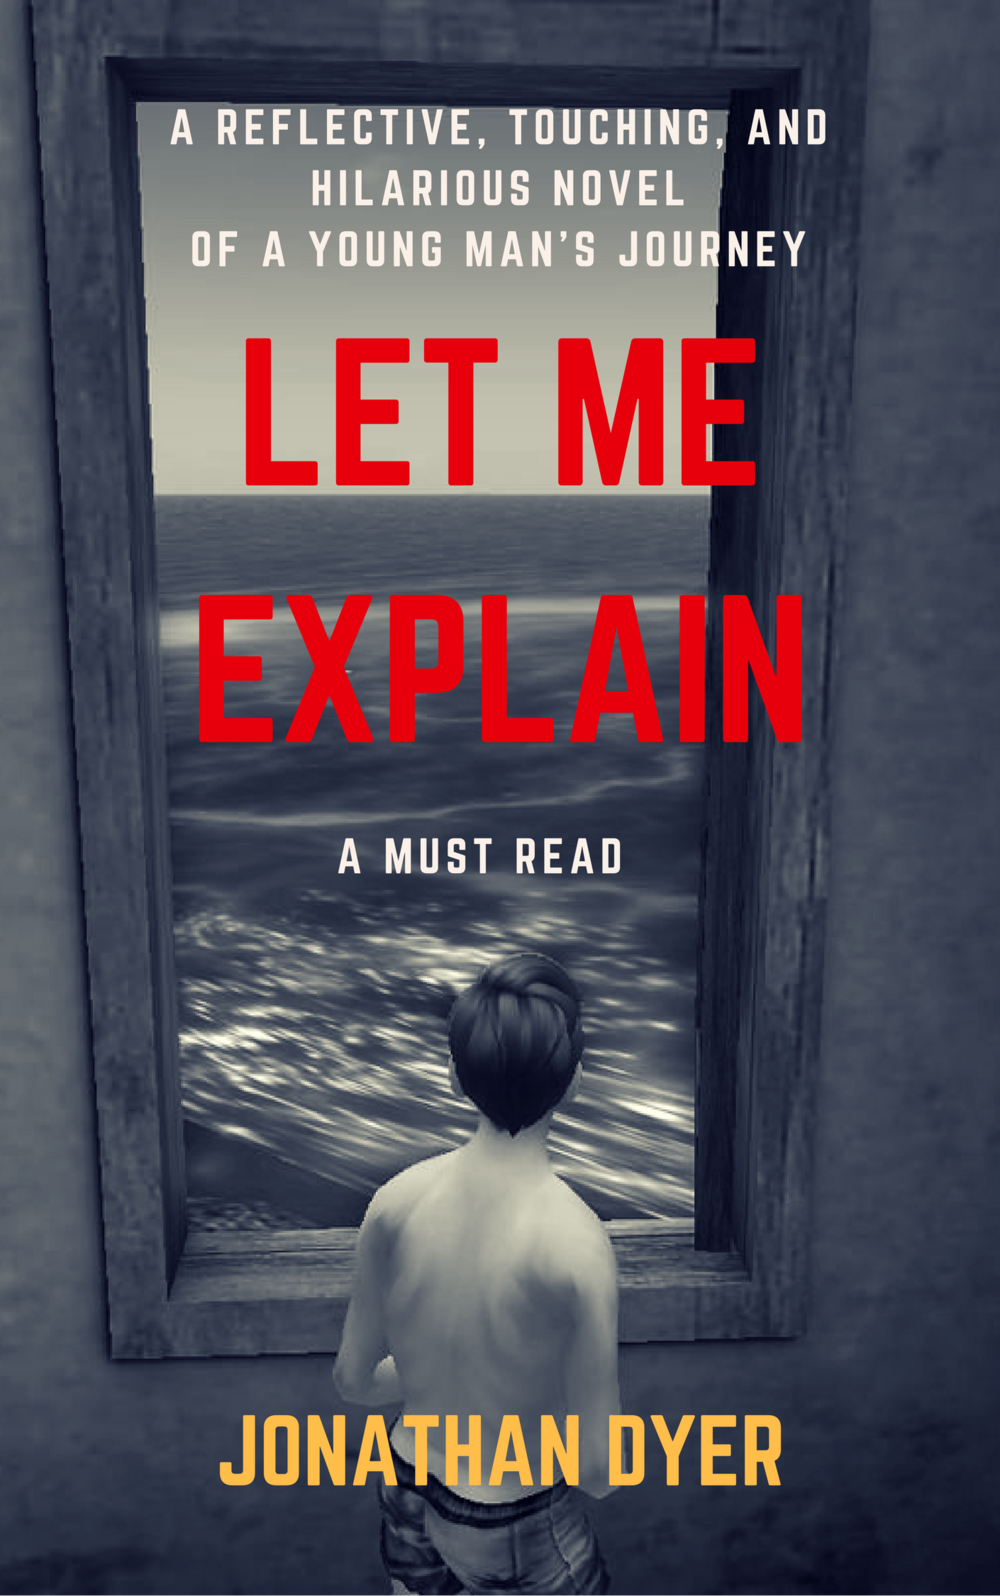 The front cover for the soon-to-be-released Let Me Explain